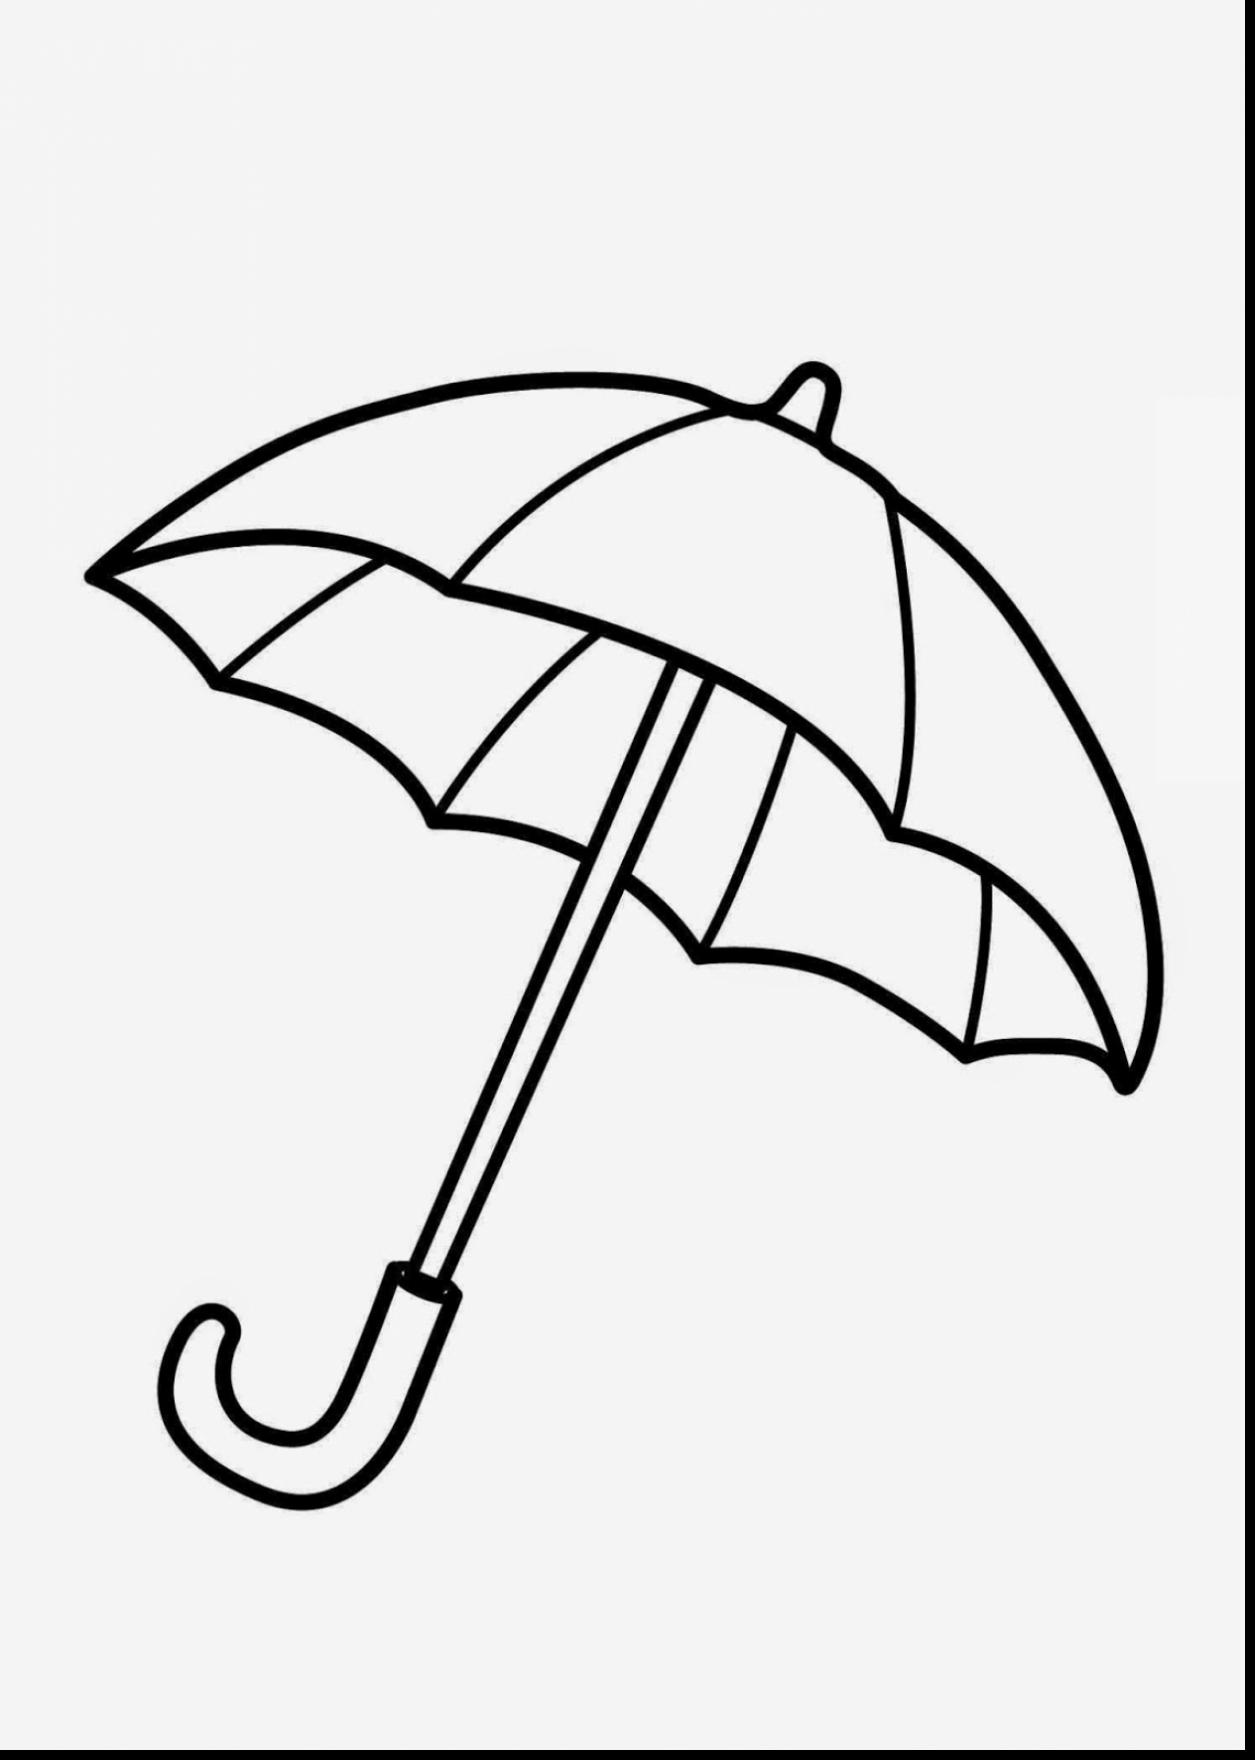 1255x1760 Impressive Beach Umbrella Clip Art Black And White With Umbrella